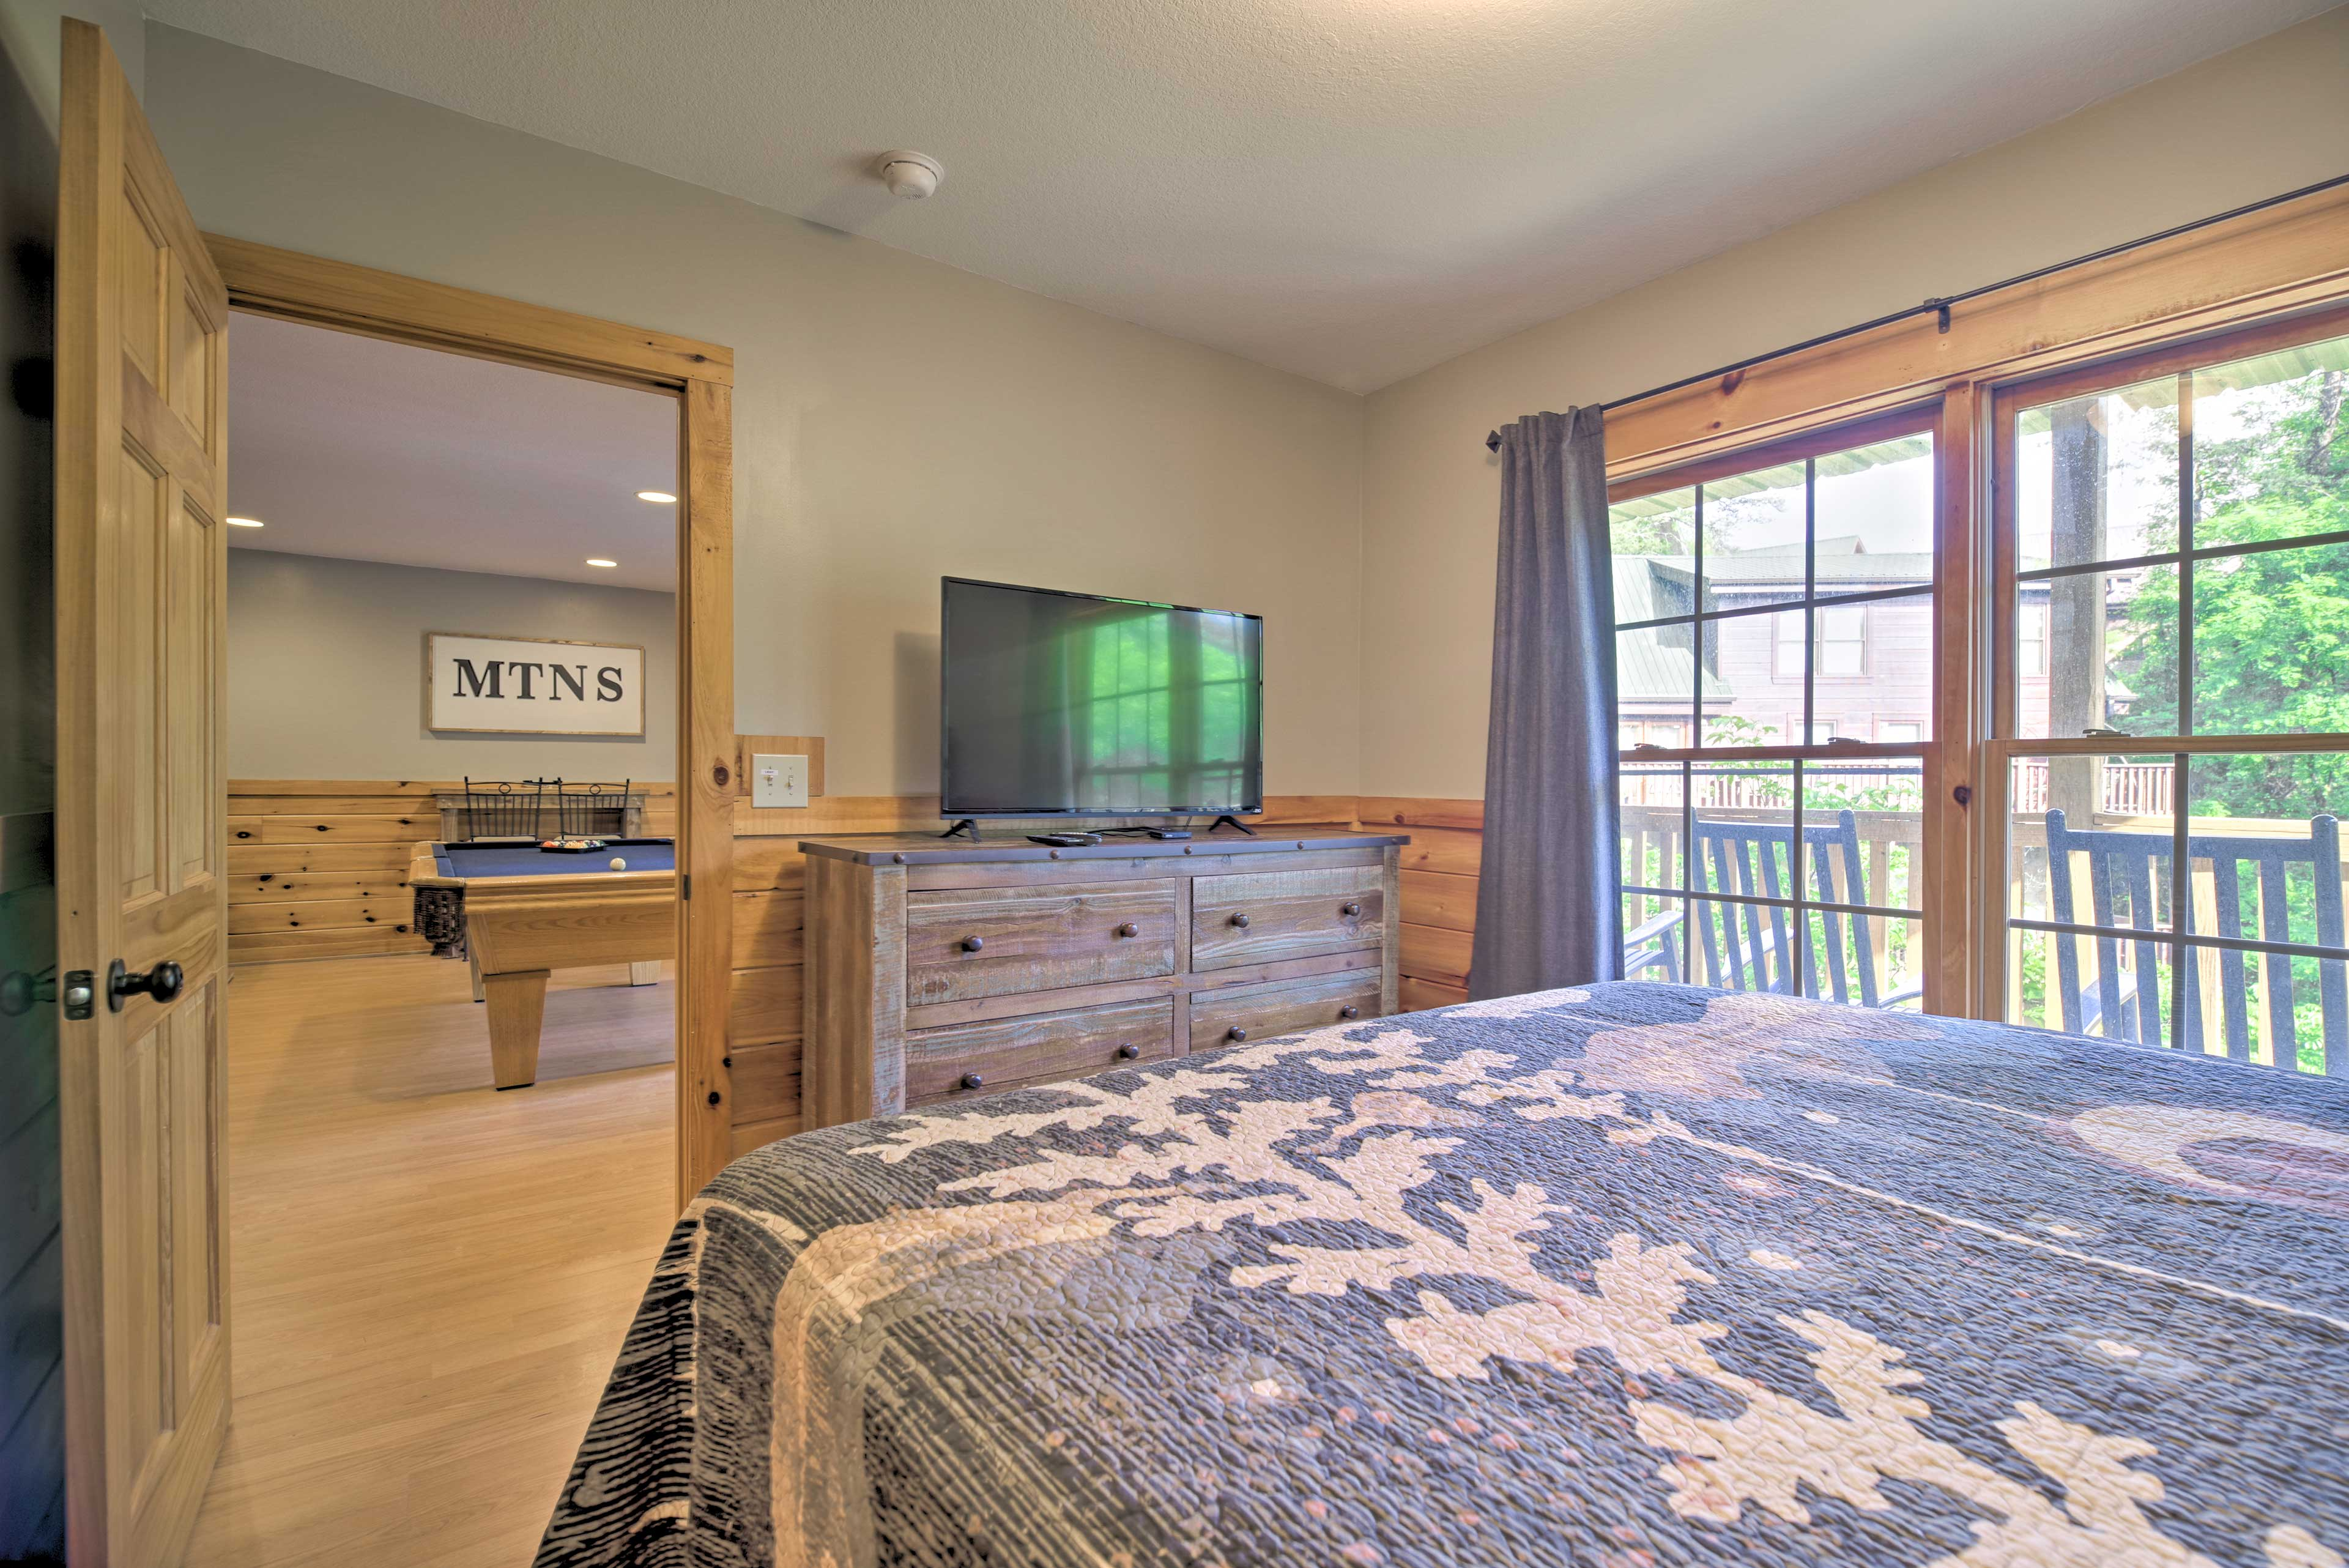 This room features a king-sized bed and flat-screen TV.